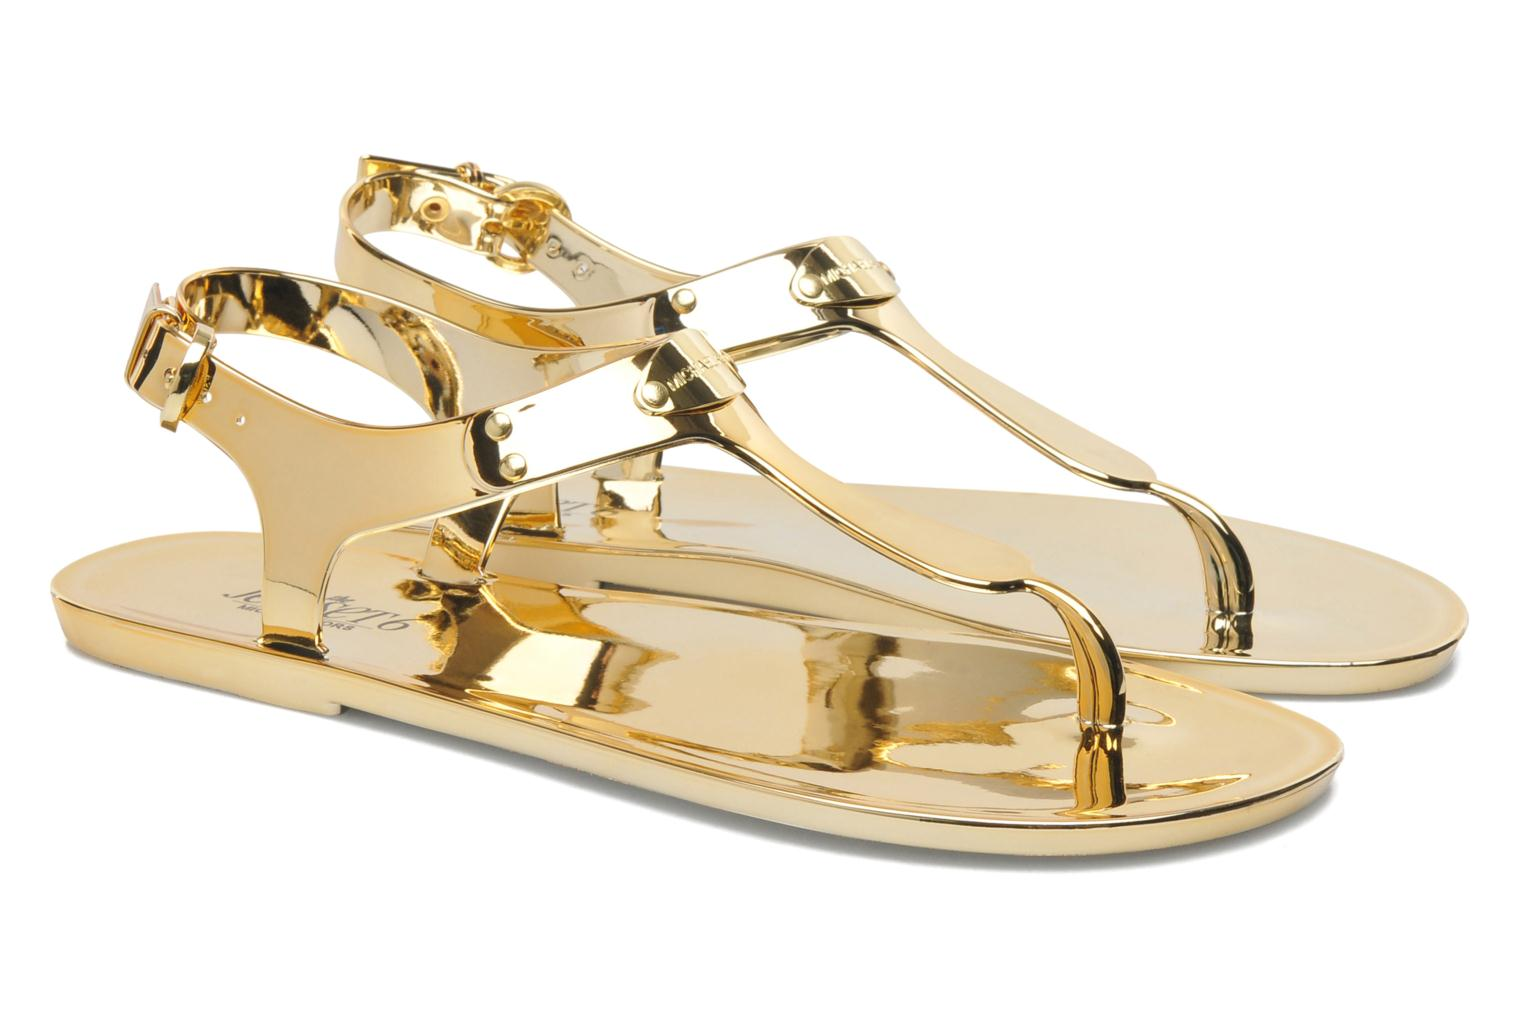 michael michael kors mk plate jelly sandals in bronze and gold at 206821. Black Bedroom Furniture Sets. Home Design Ideas